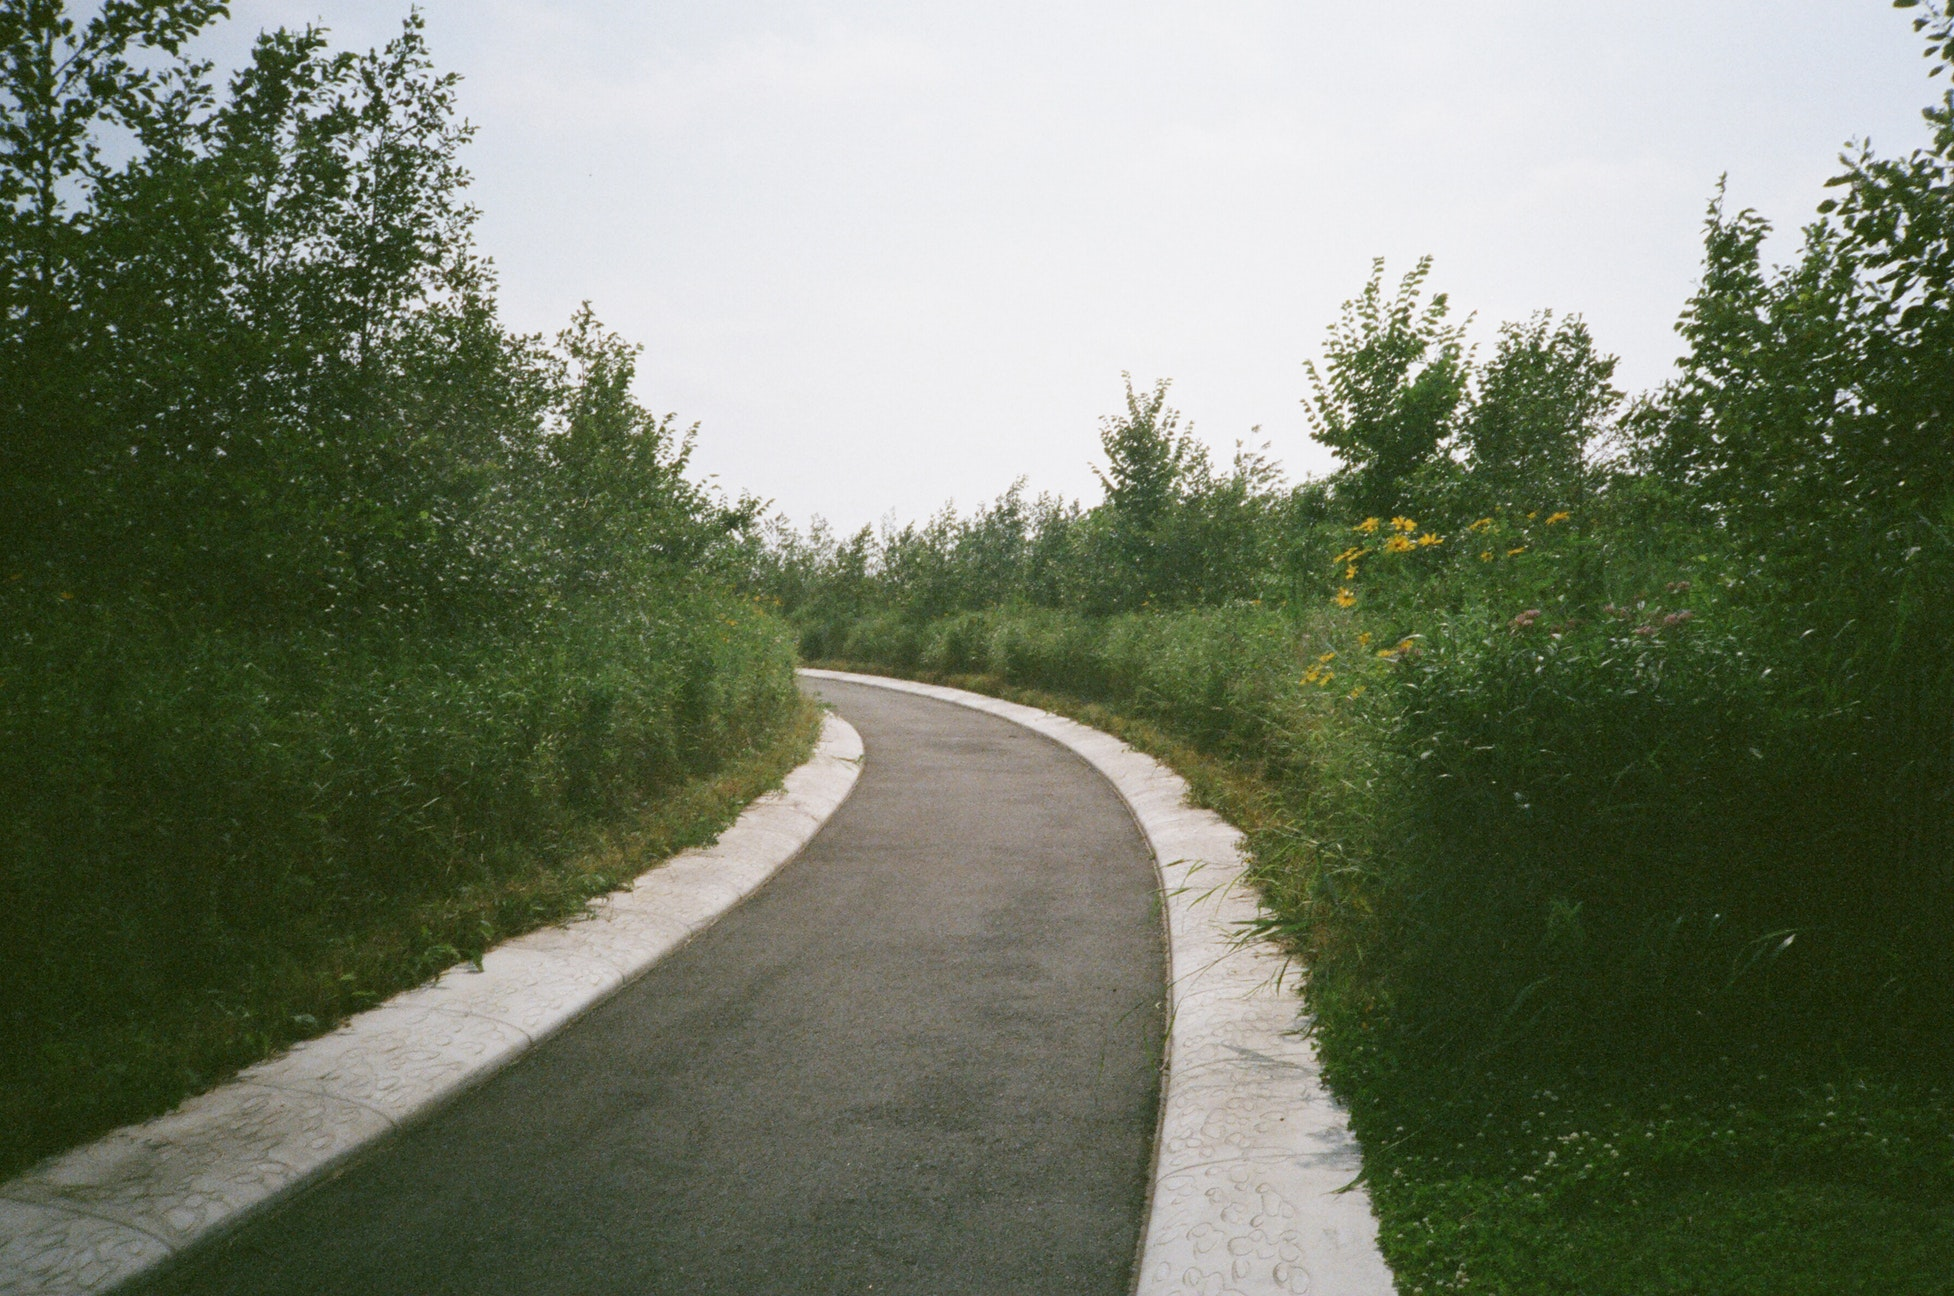 Picture of the end of a concrete path in the woods.